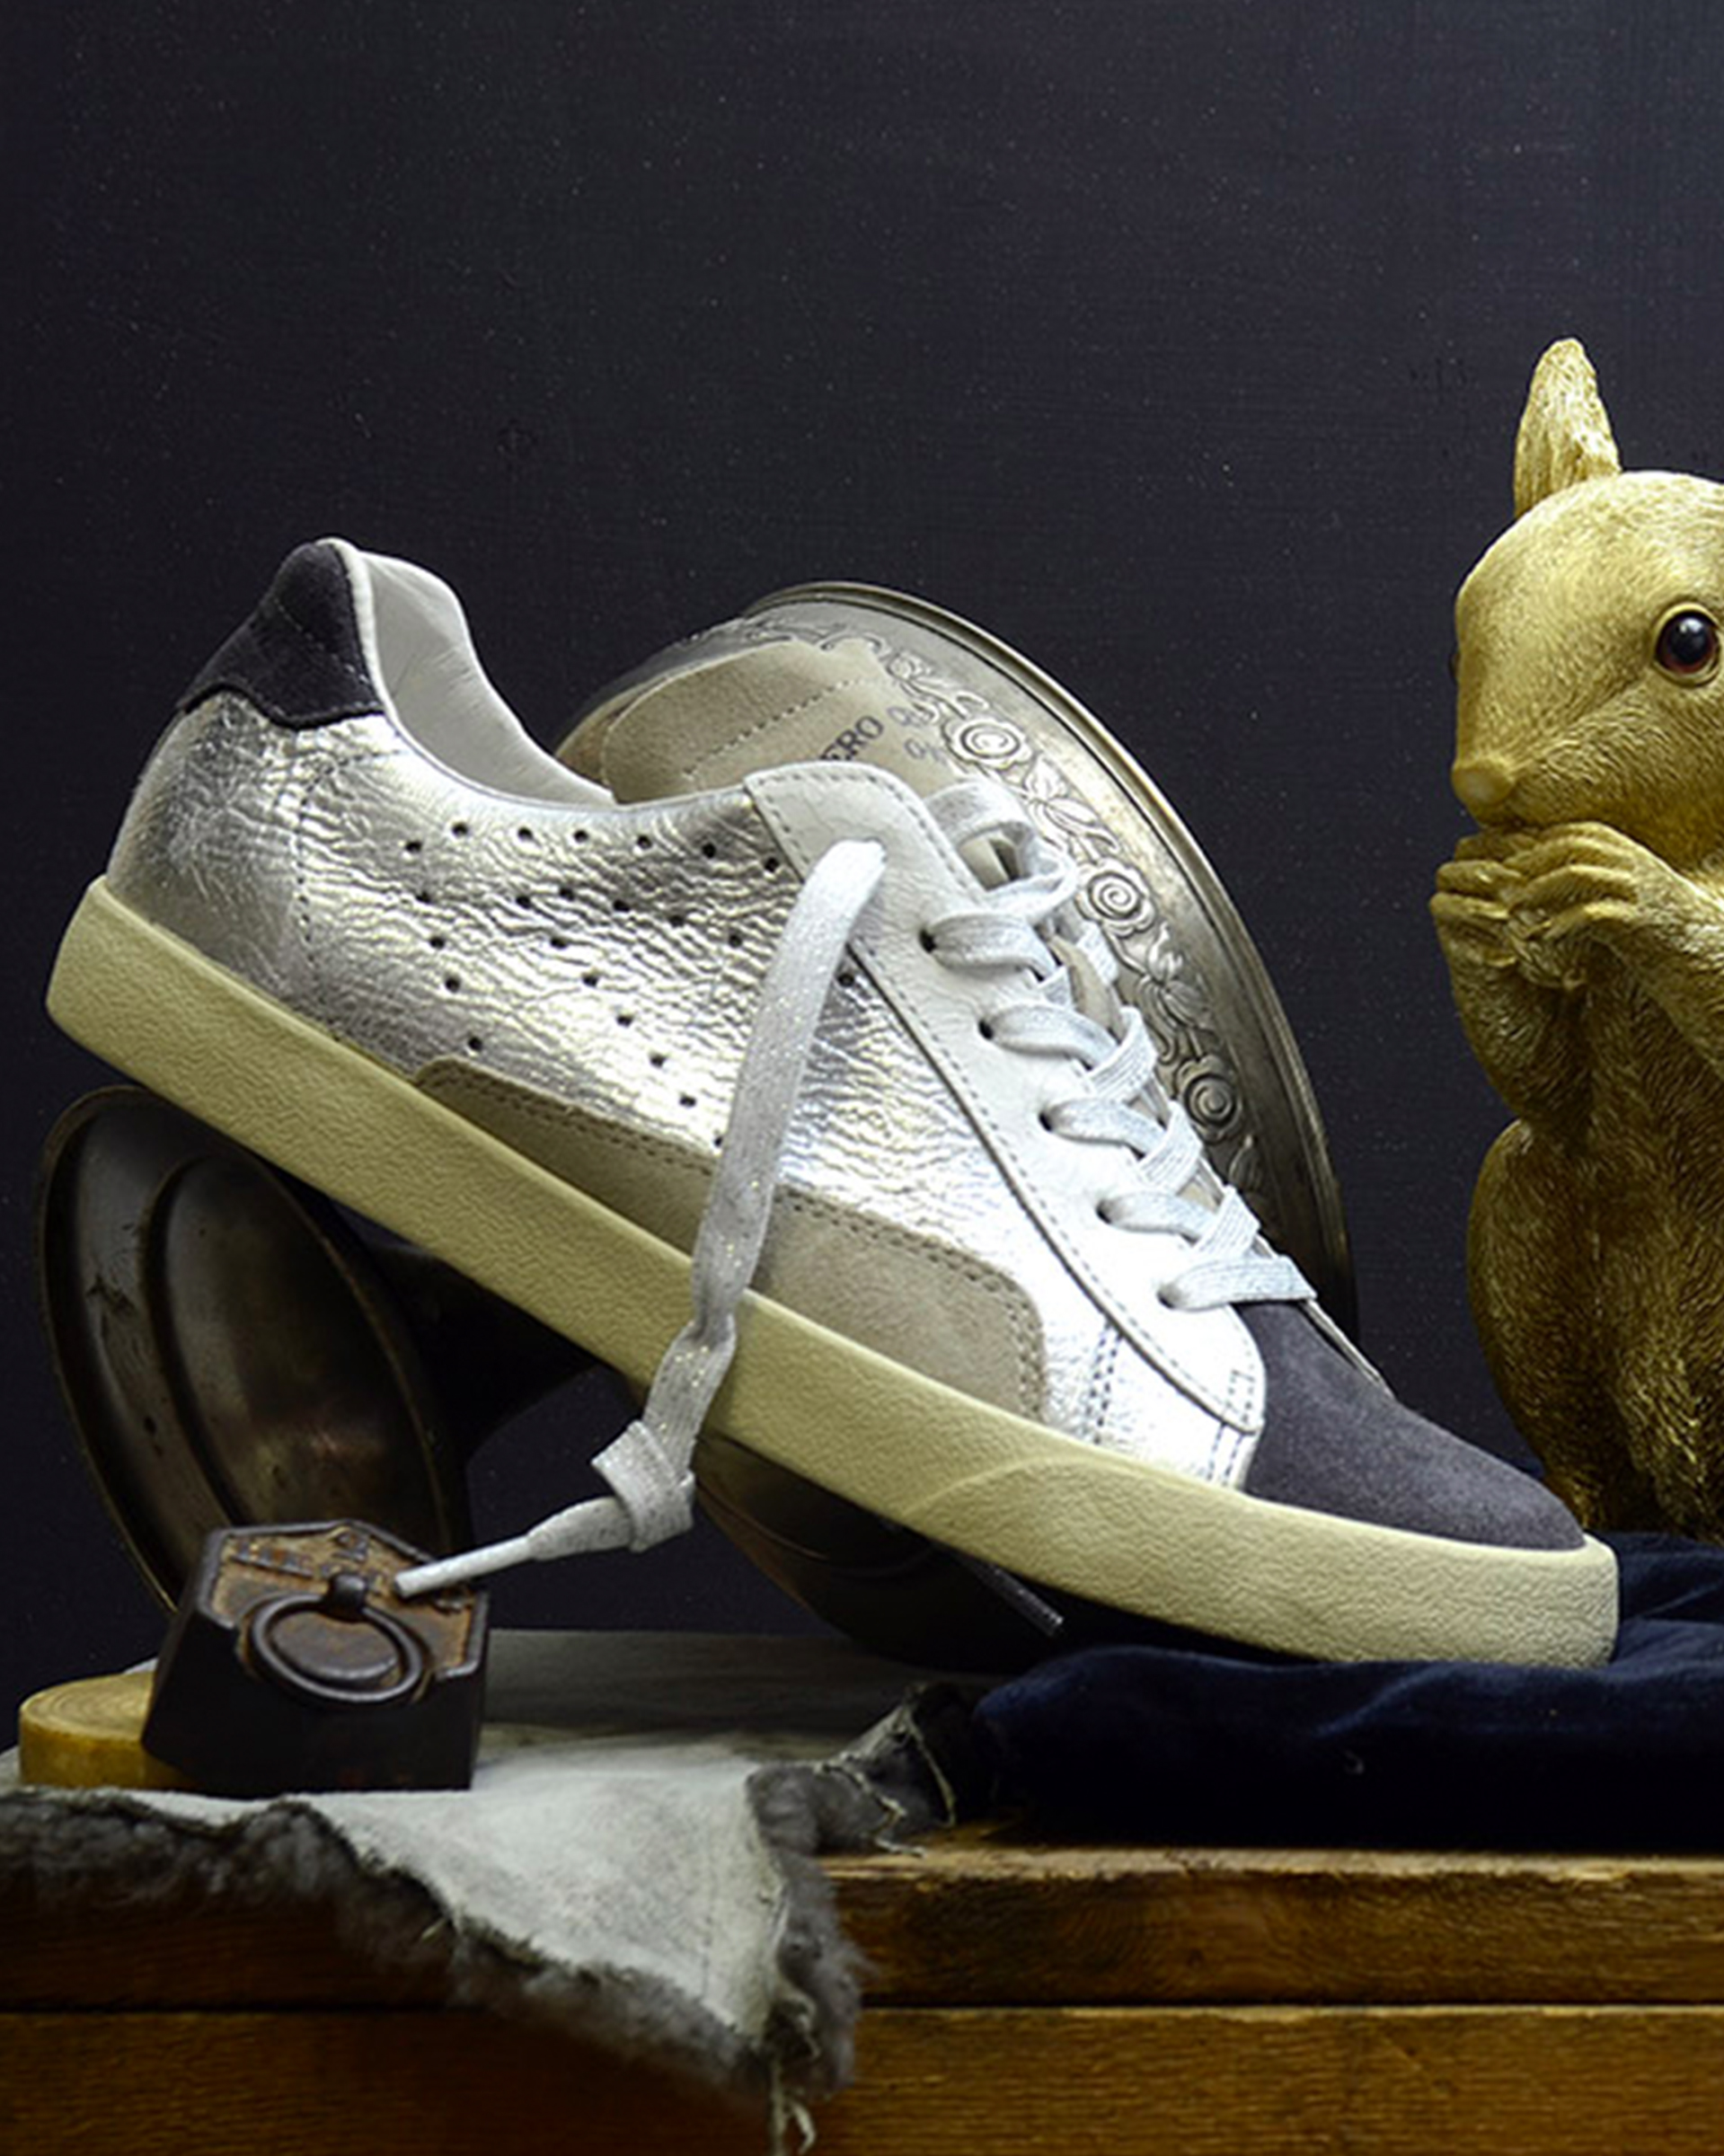 0-105 - Established in Marseille in 2012, 0-105 takes inspiration from contemporary culture, vintage, art, street style and the beauty that lies in imperfection…The label expanded quickly from a small recycled vintage line to a modern sneaker collection.Today, 0-105 sneakers, a luxurious interpretation of the most iconic «basket » silhouettes, are carefully crafted from the finest leathers and finished with subtle signature, for a timeless stylish sneaker.